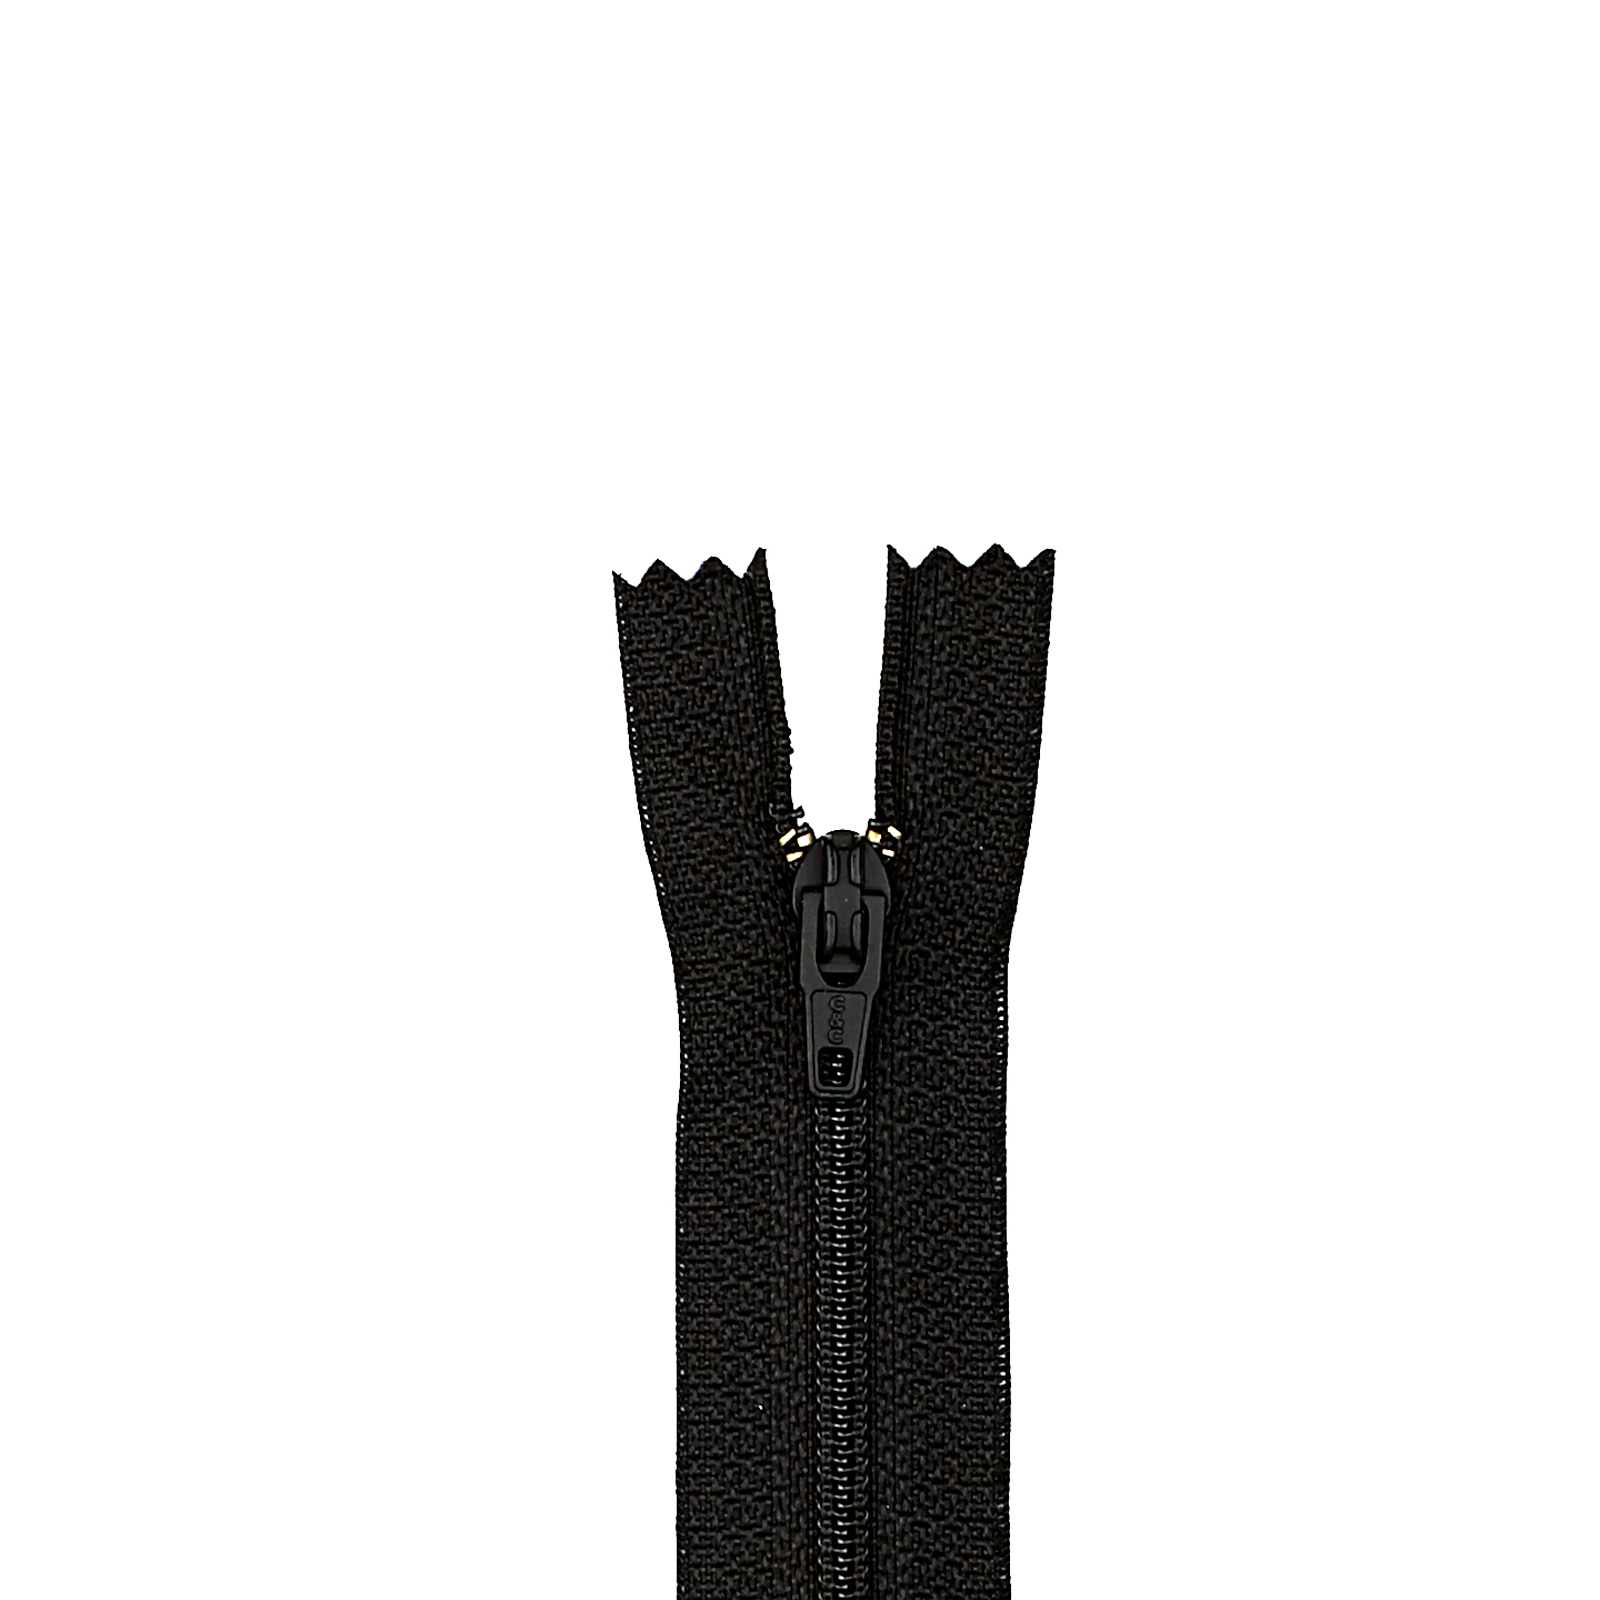 Trouser Zipper 11'' Black